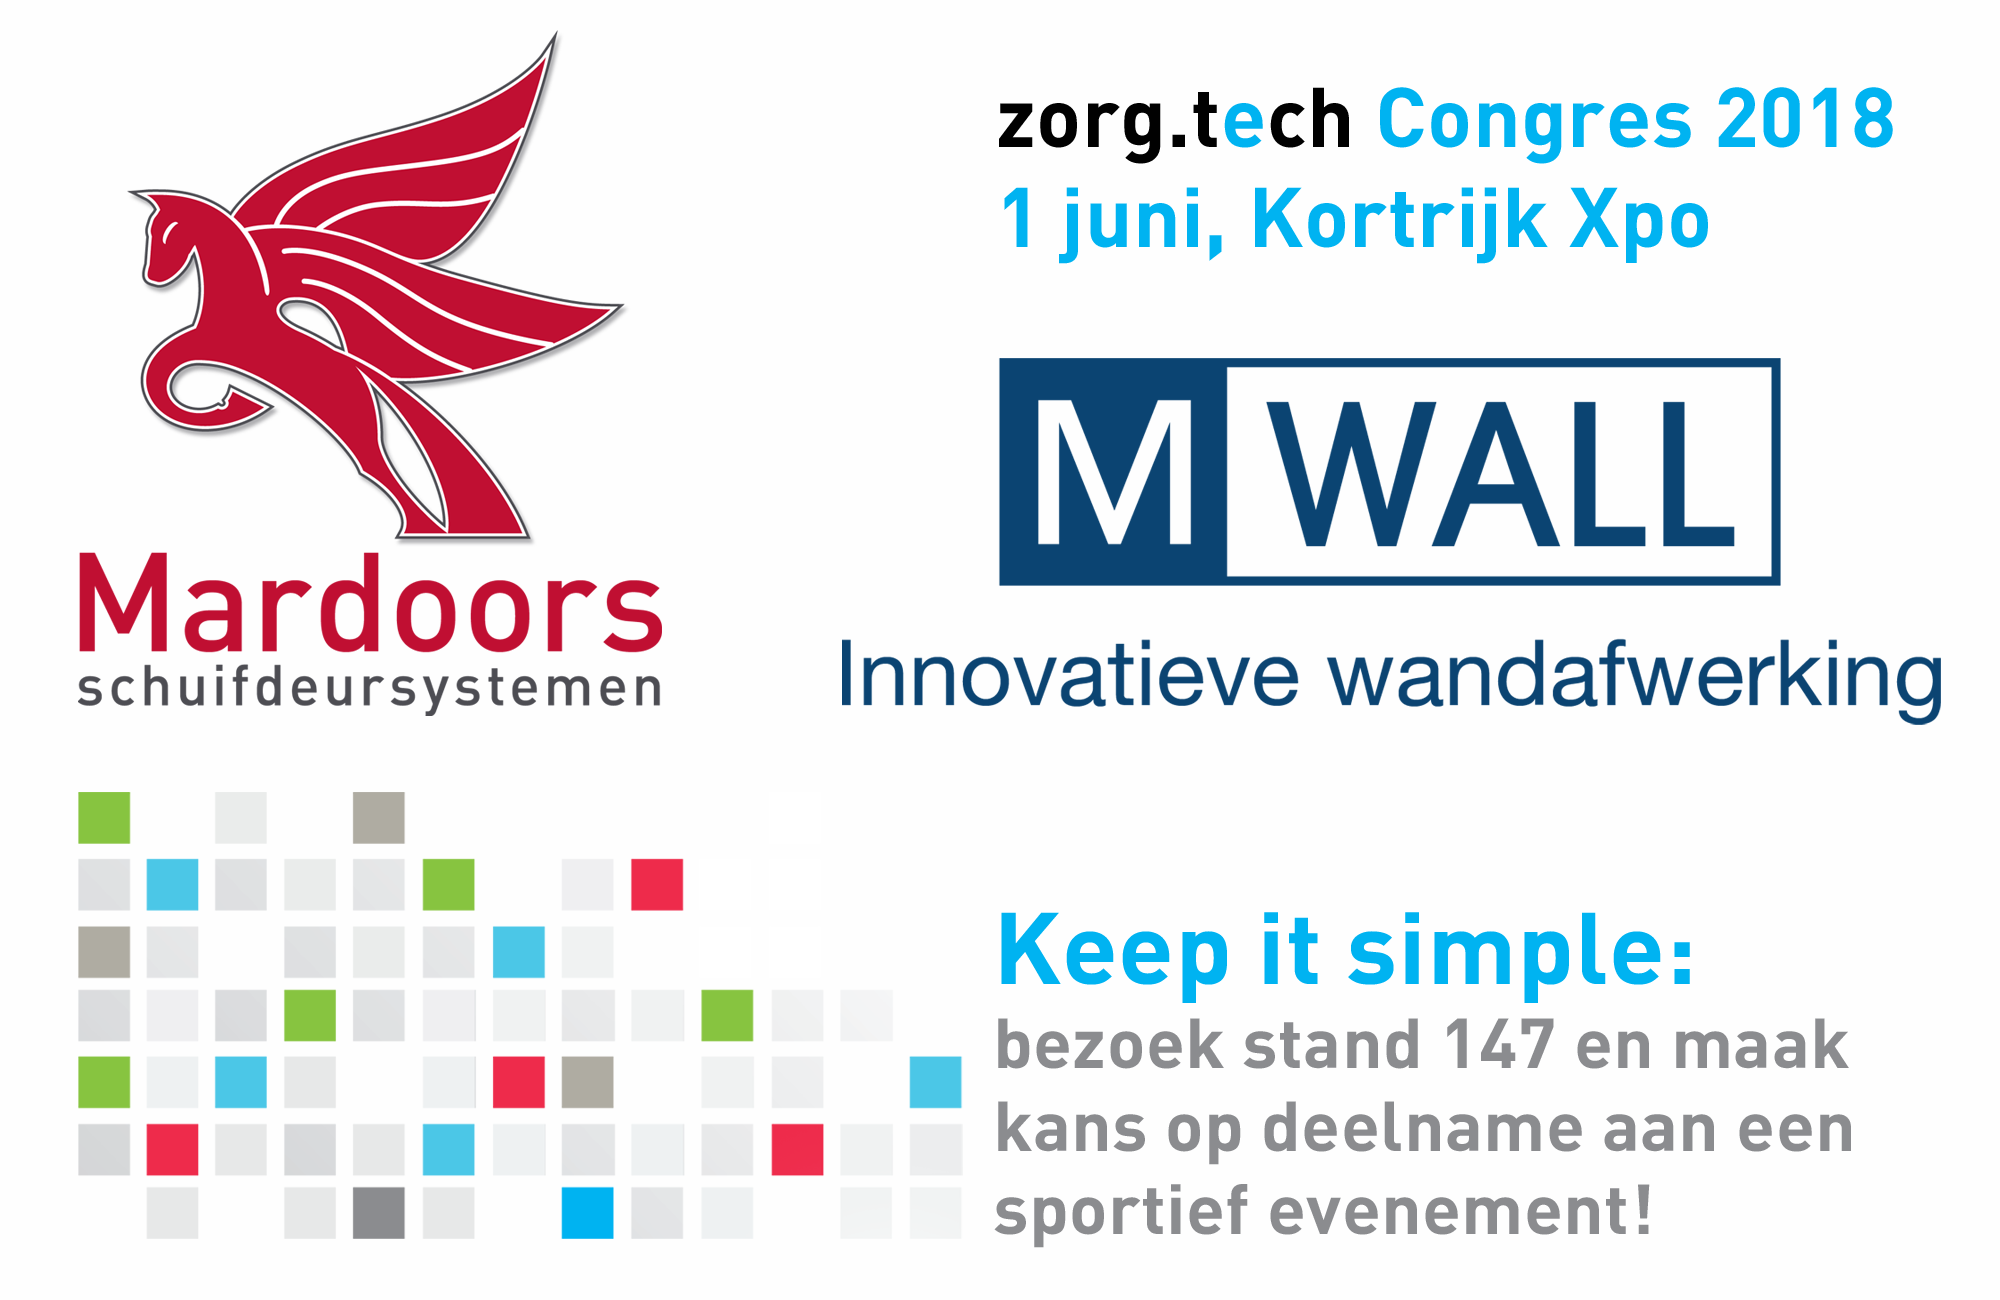 Mardoors En M-Wall Op Zorg.tech Congress